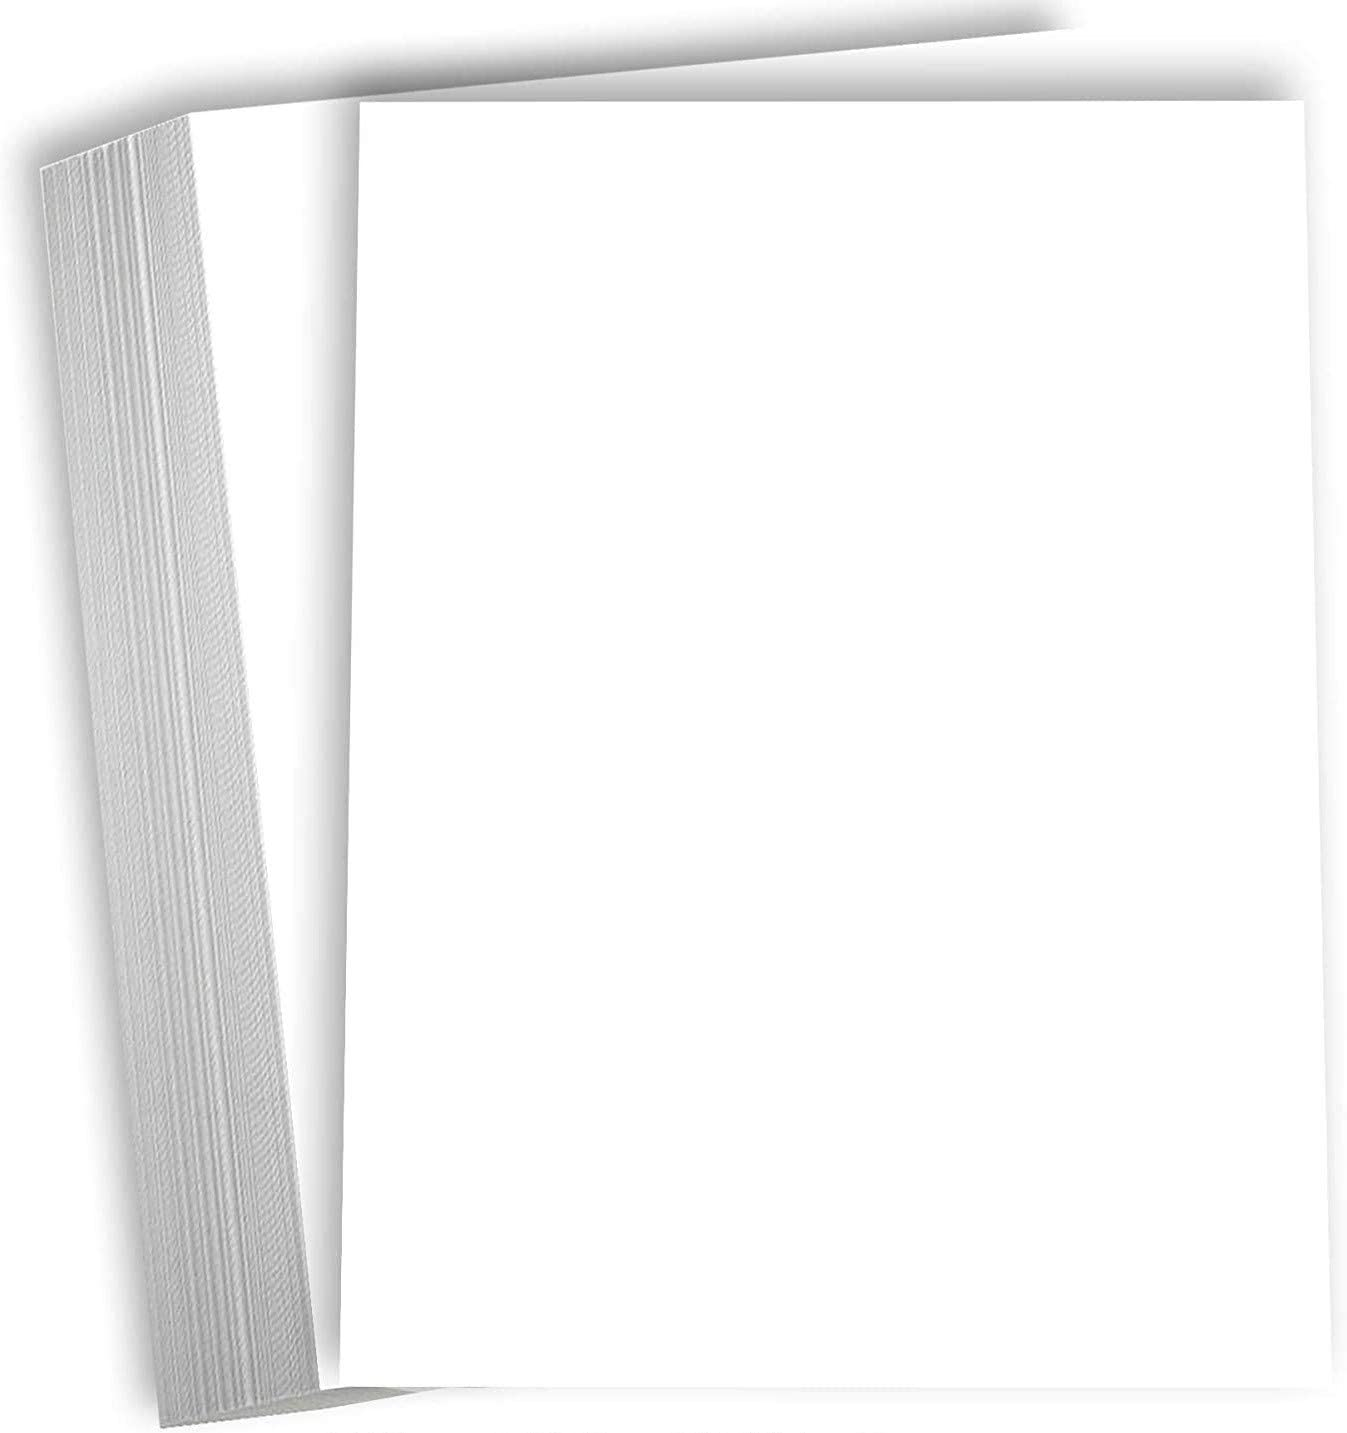 4 1//8 x 8 - 120lb Pack of 250 Photo Greeting Flat Card Glossy White